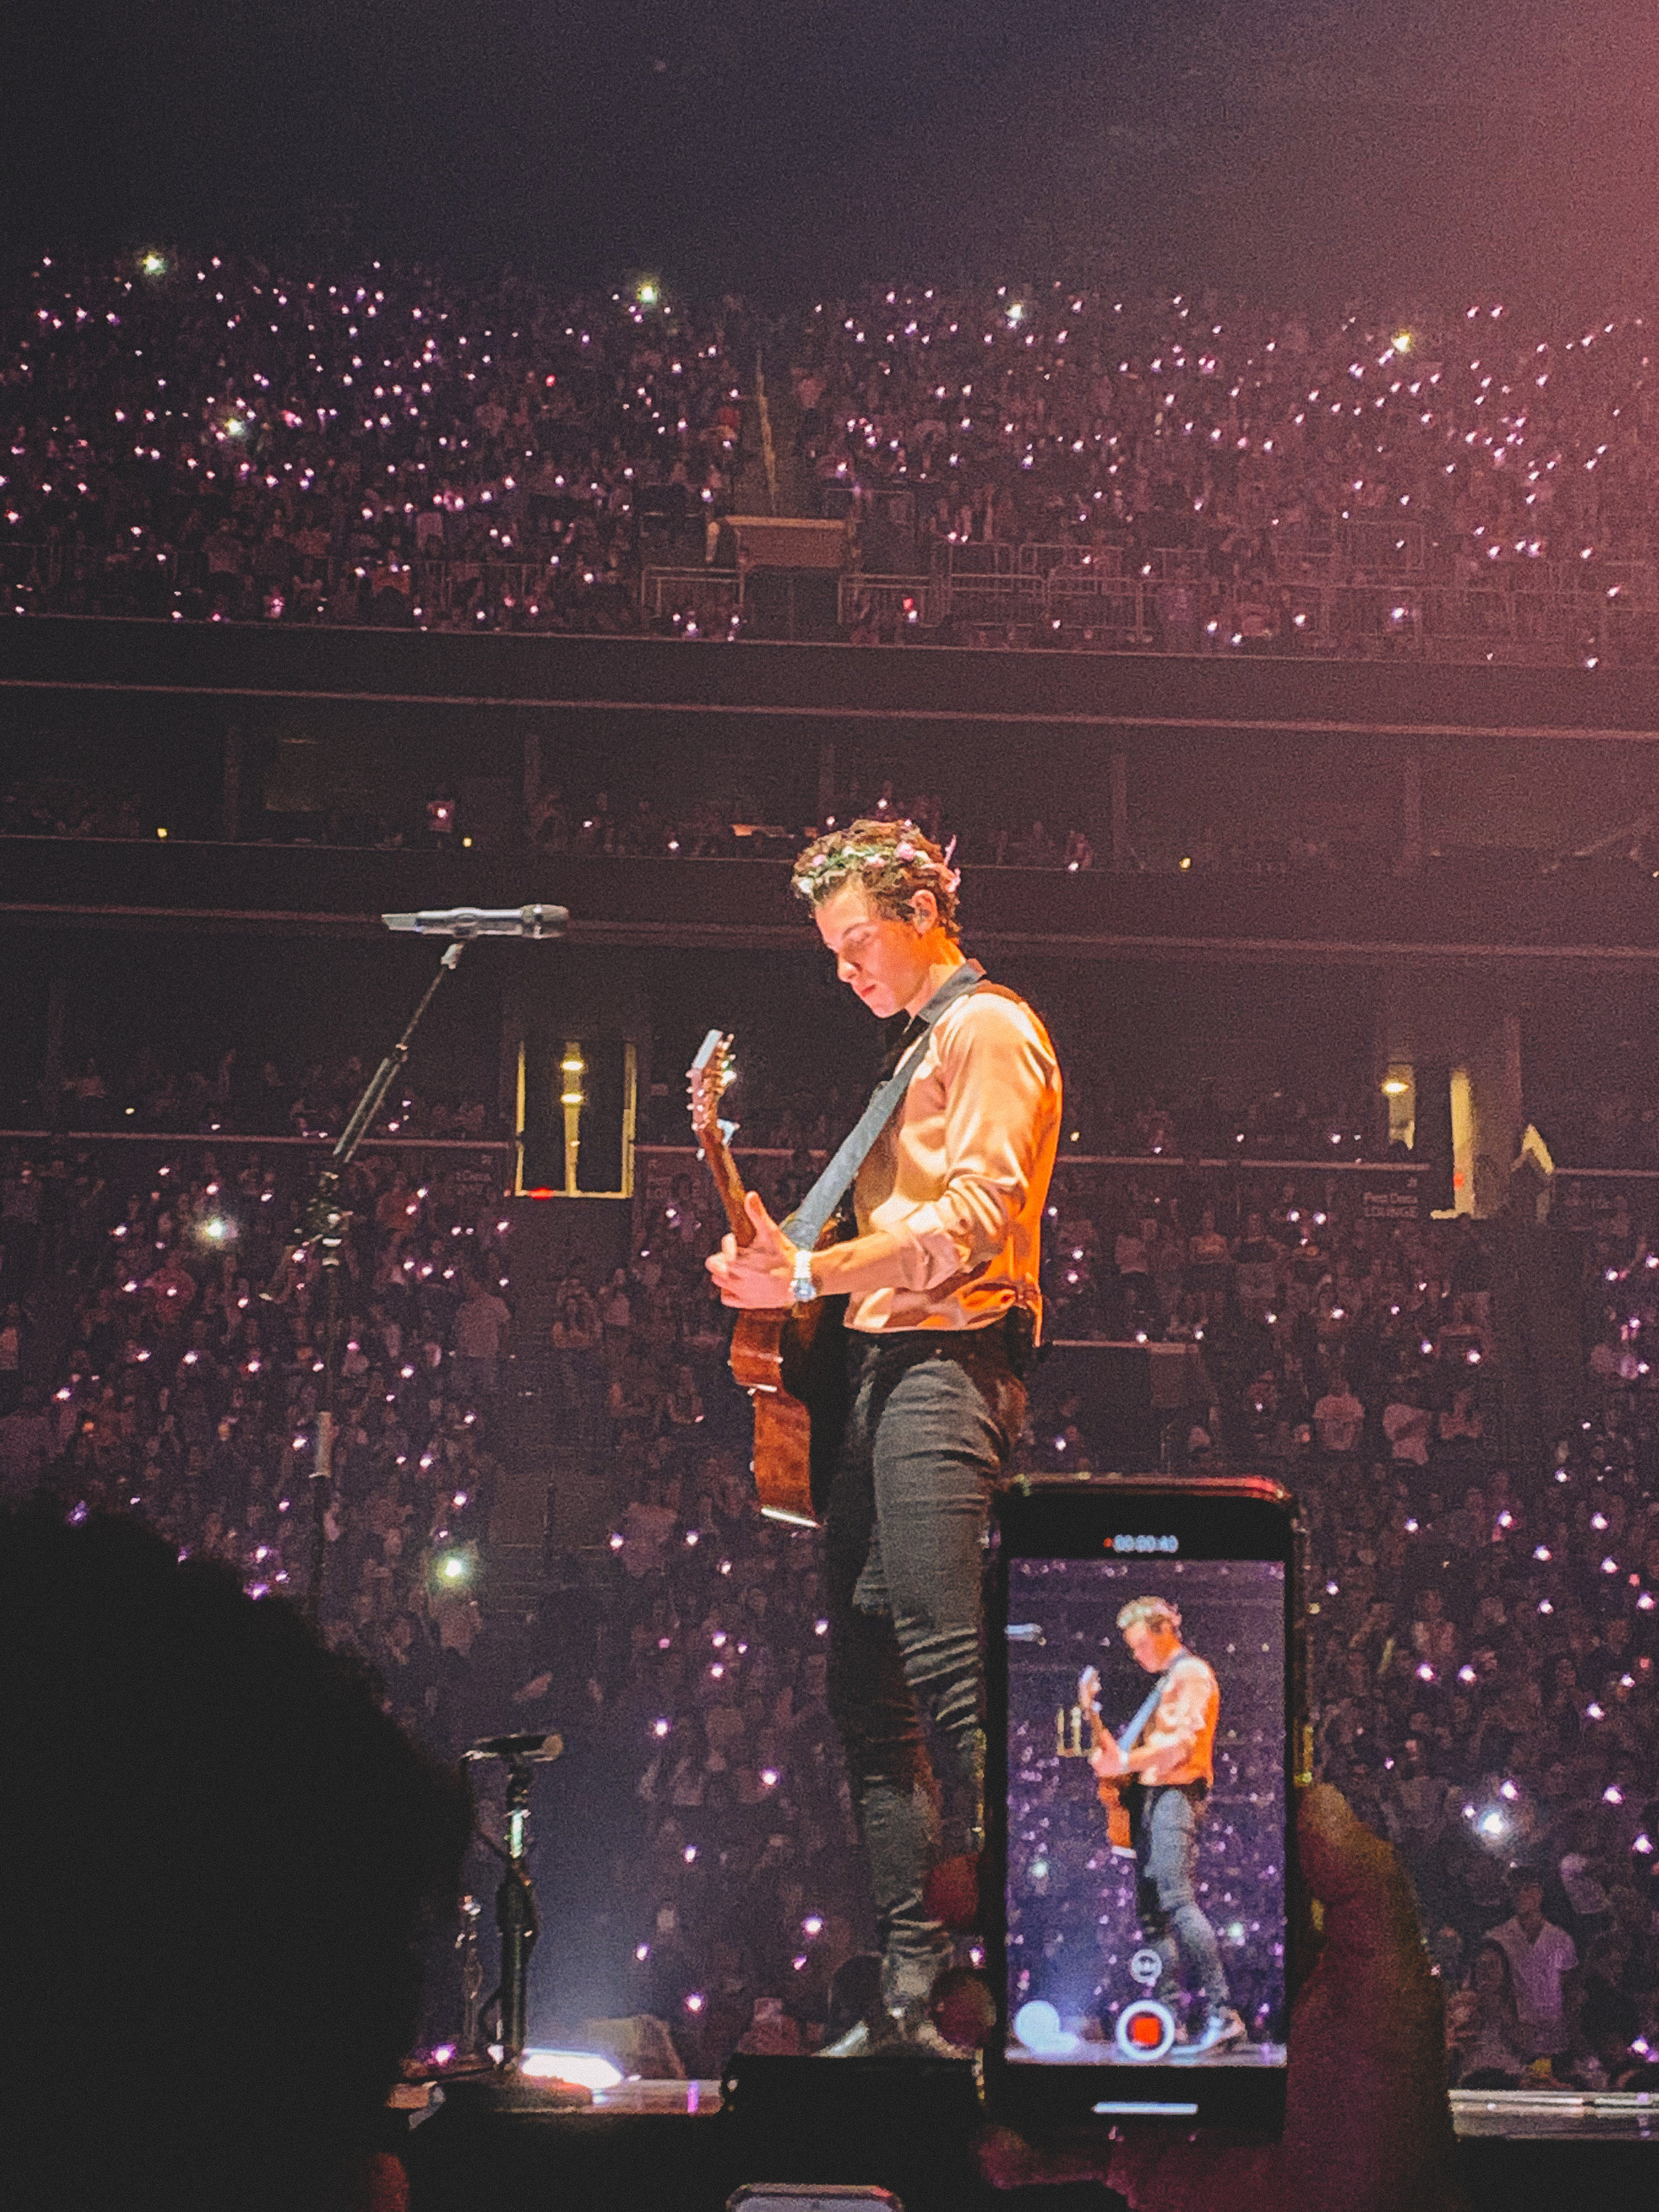 Experienced my fifth Shawn Mendes concert